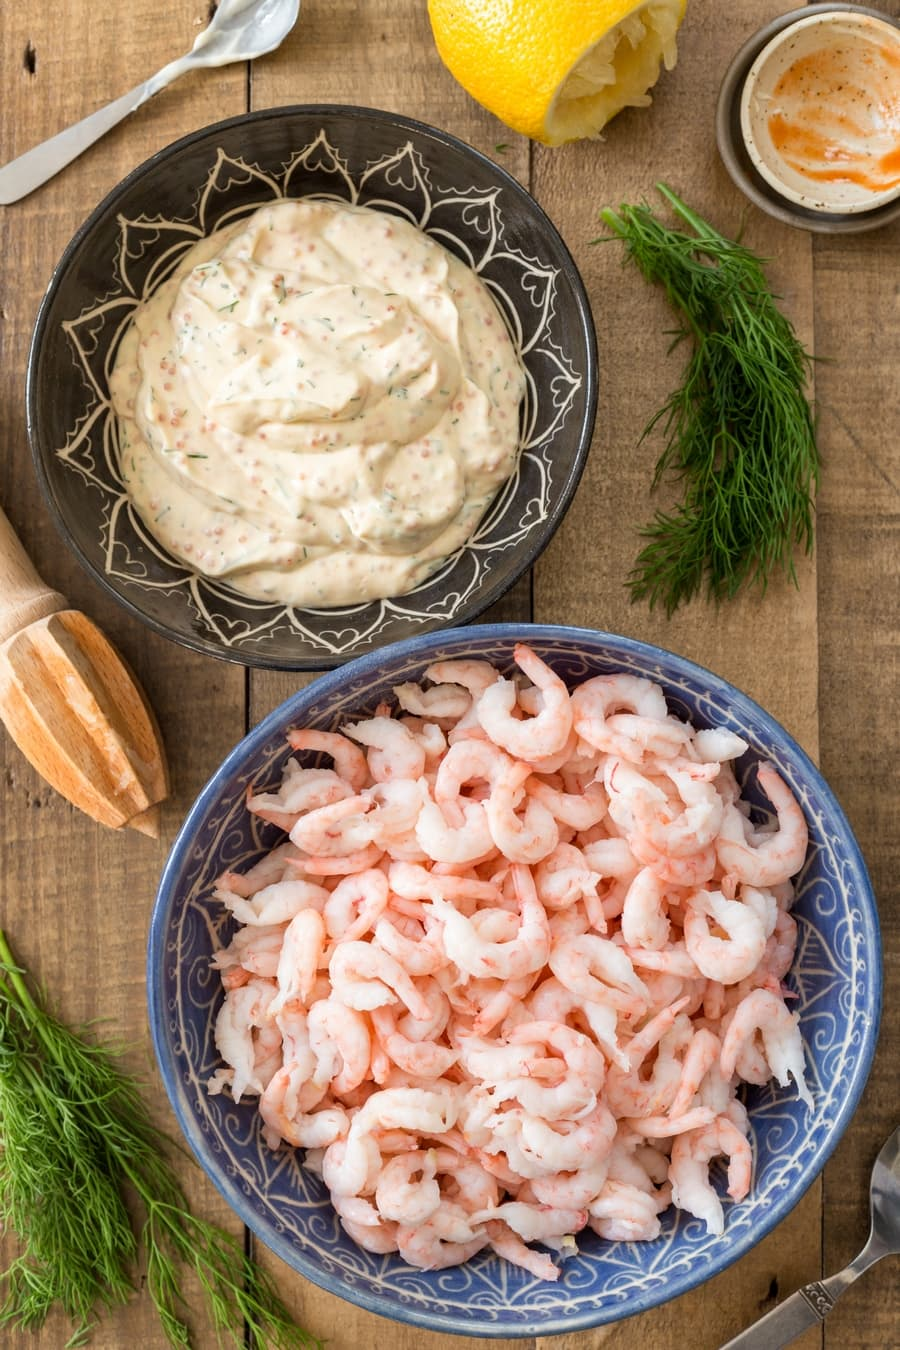 Bowl of creamy base for shrimp salad and bowl with shrimps.